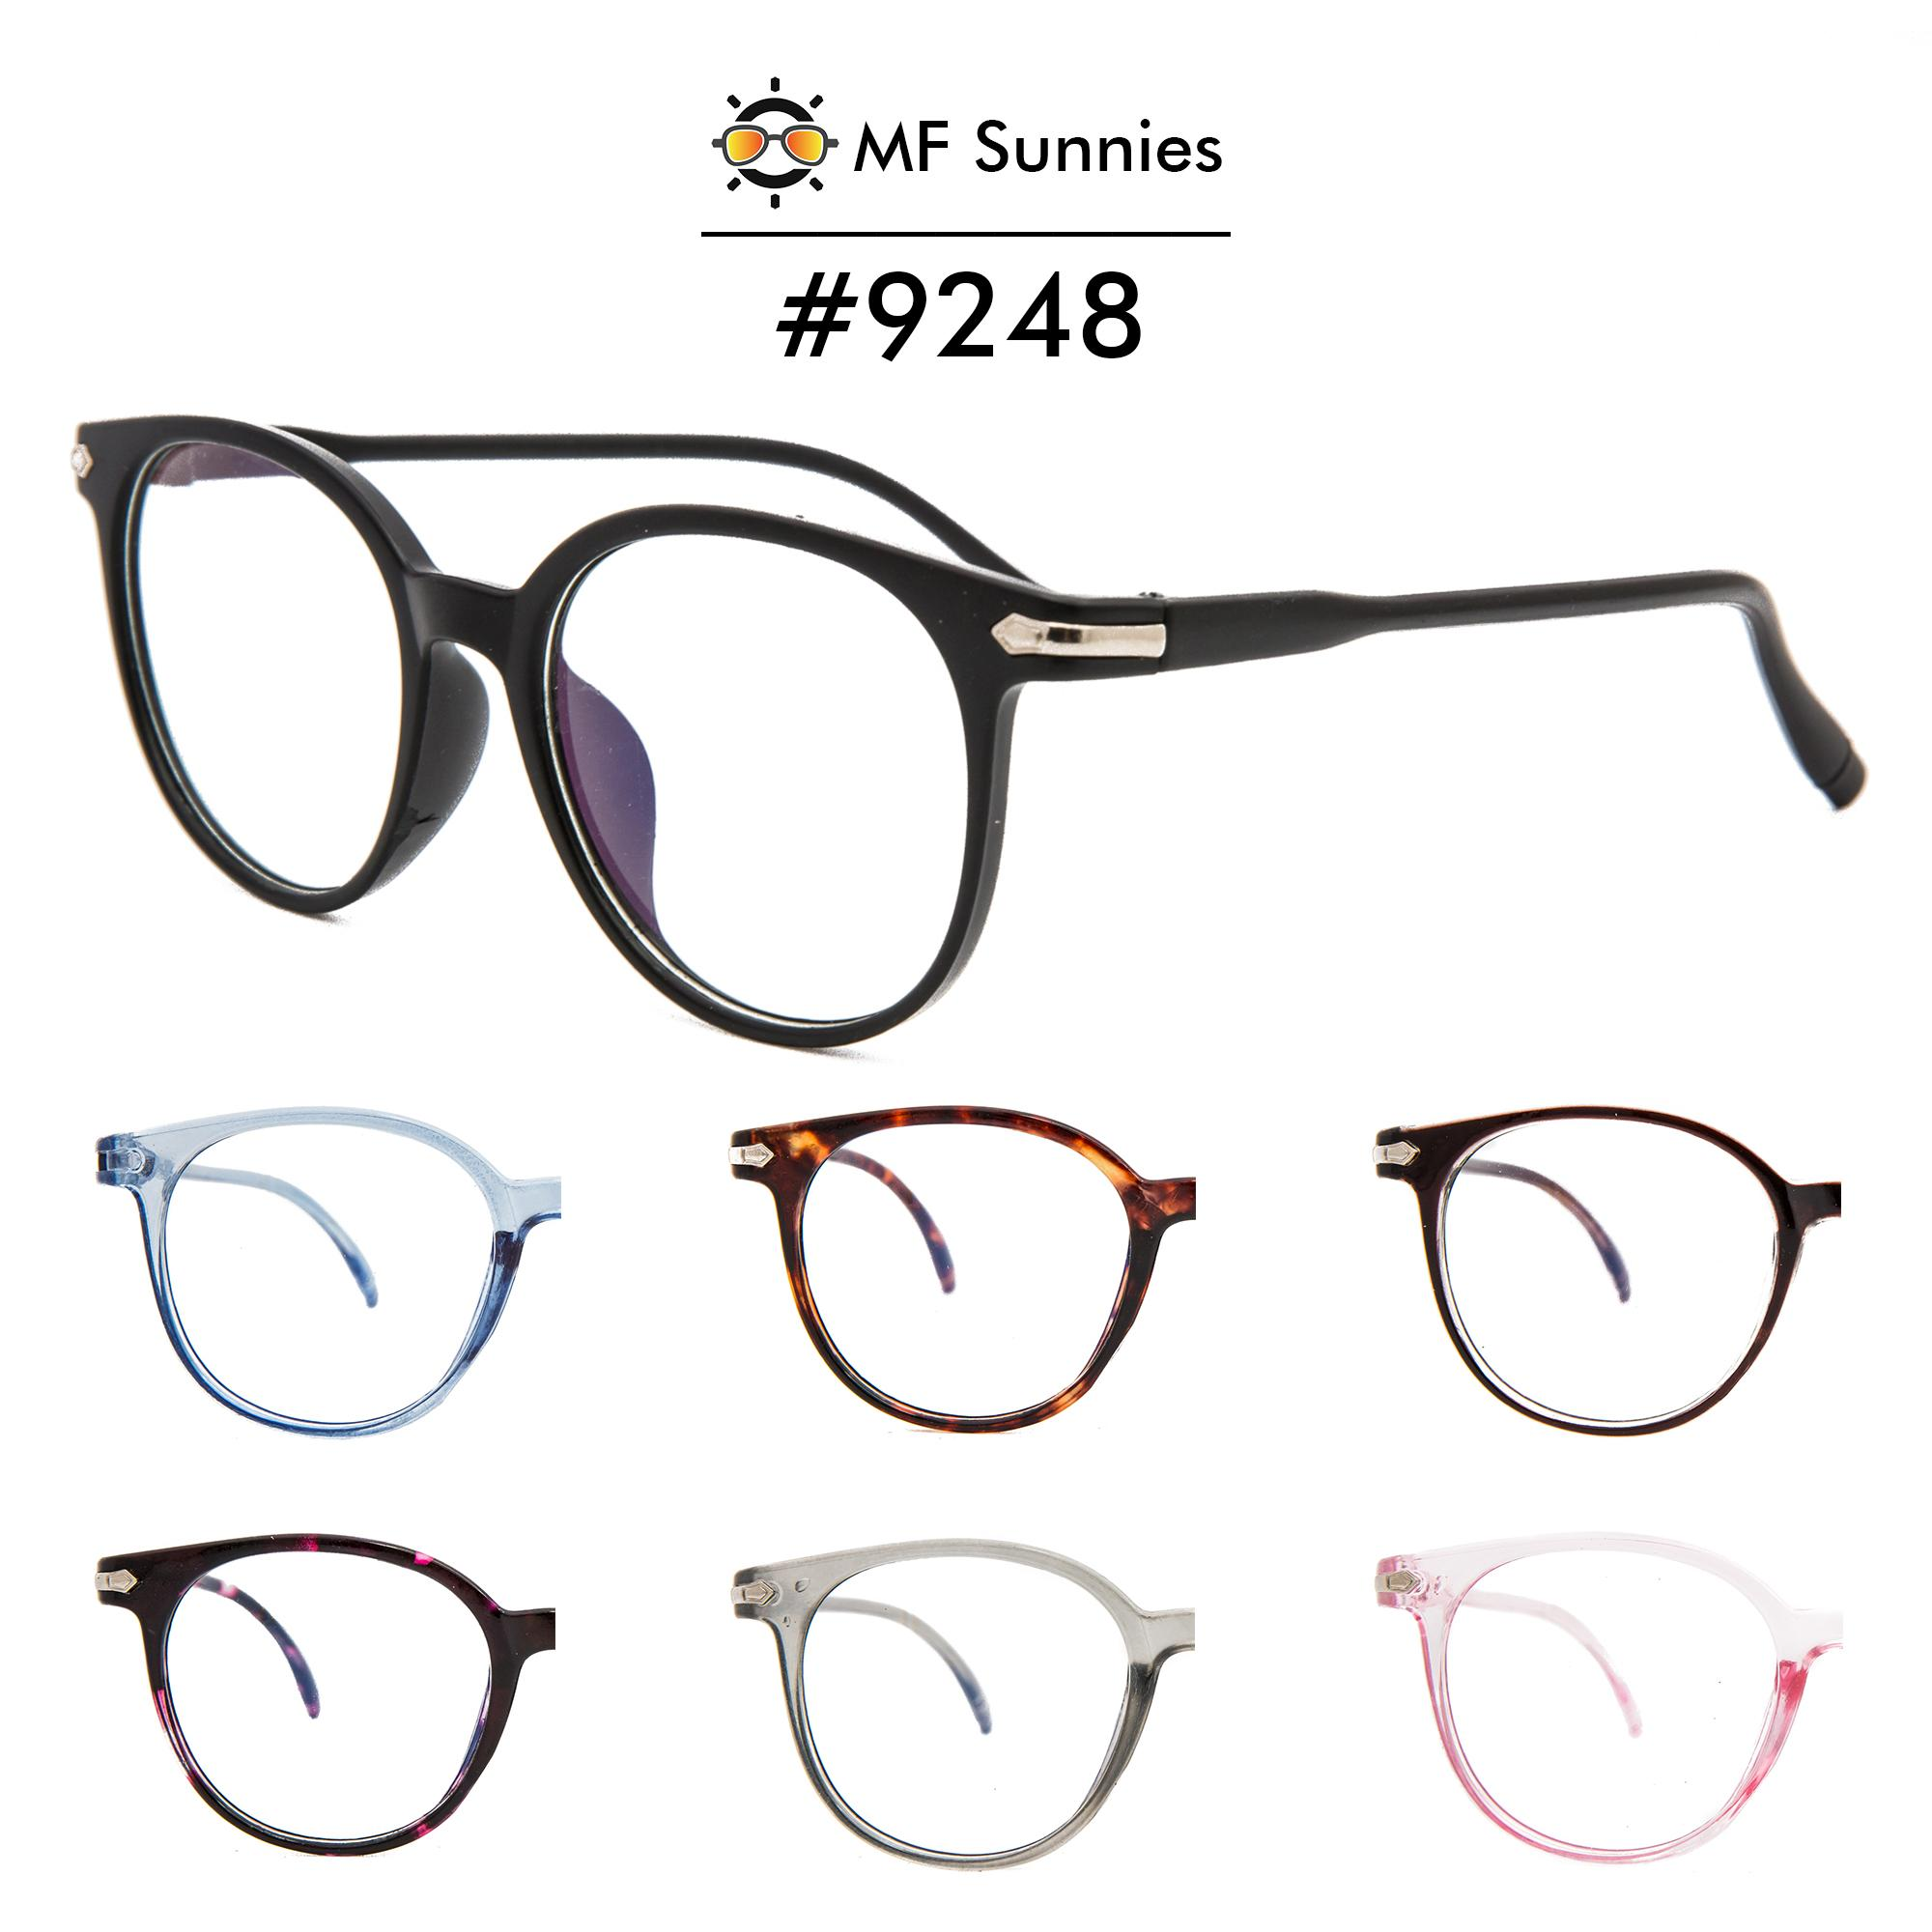 08df21af3 MFSunnies Computer Anti-Radiation / Anti-Blue Light Flexible Frame Fashion  Eyewear #9248